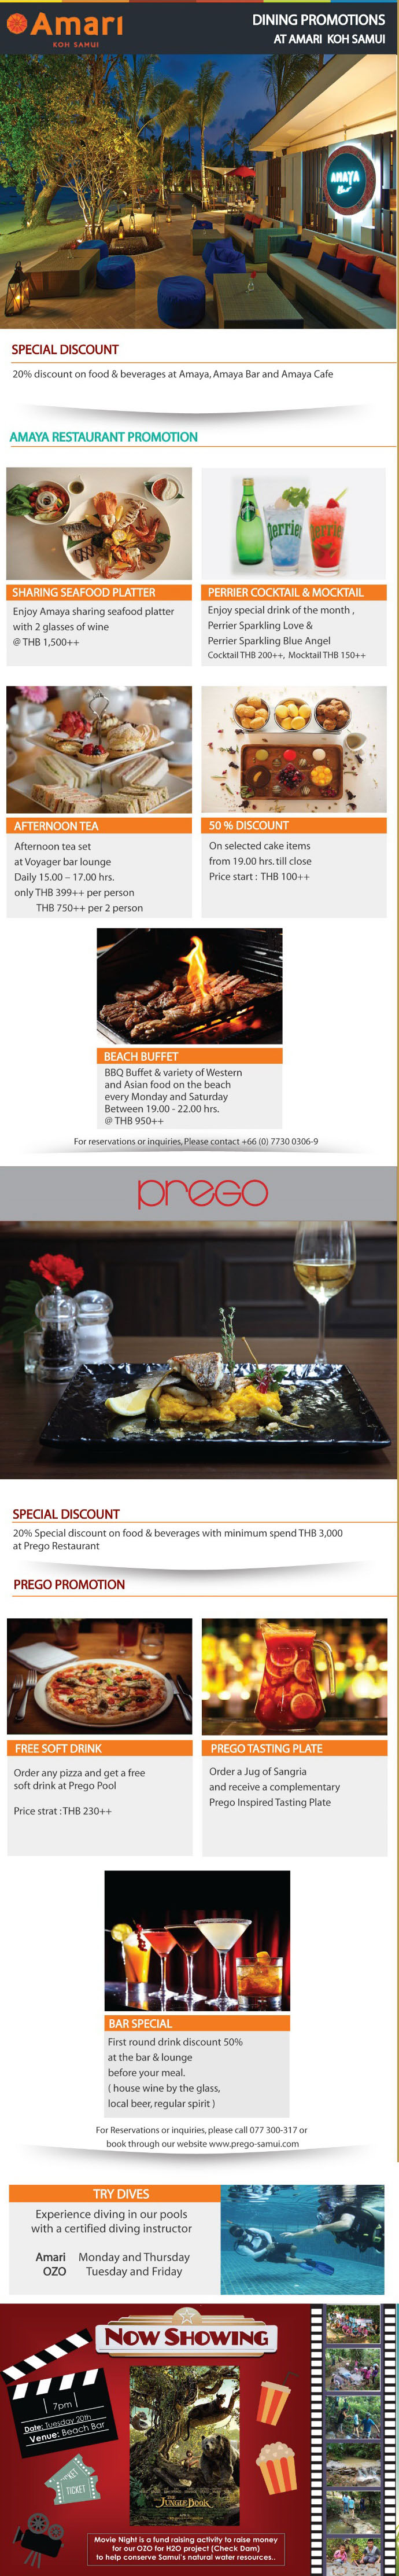 Amari and OZO Dining Card Promotions for September | Samui Times